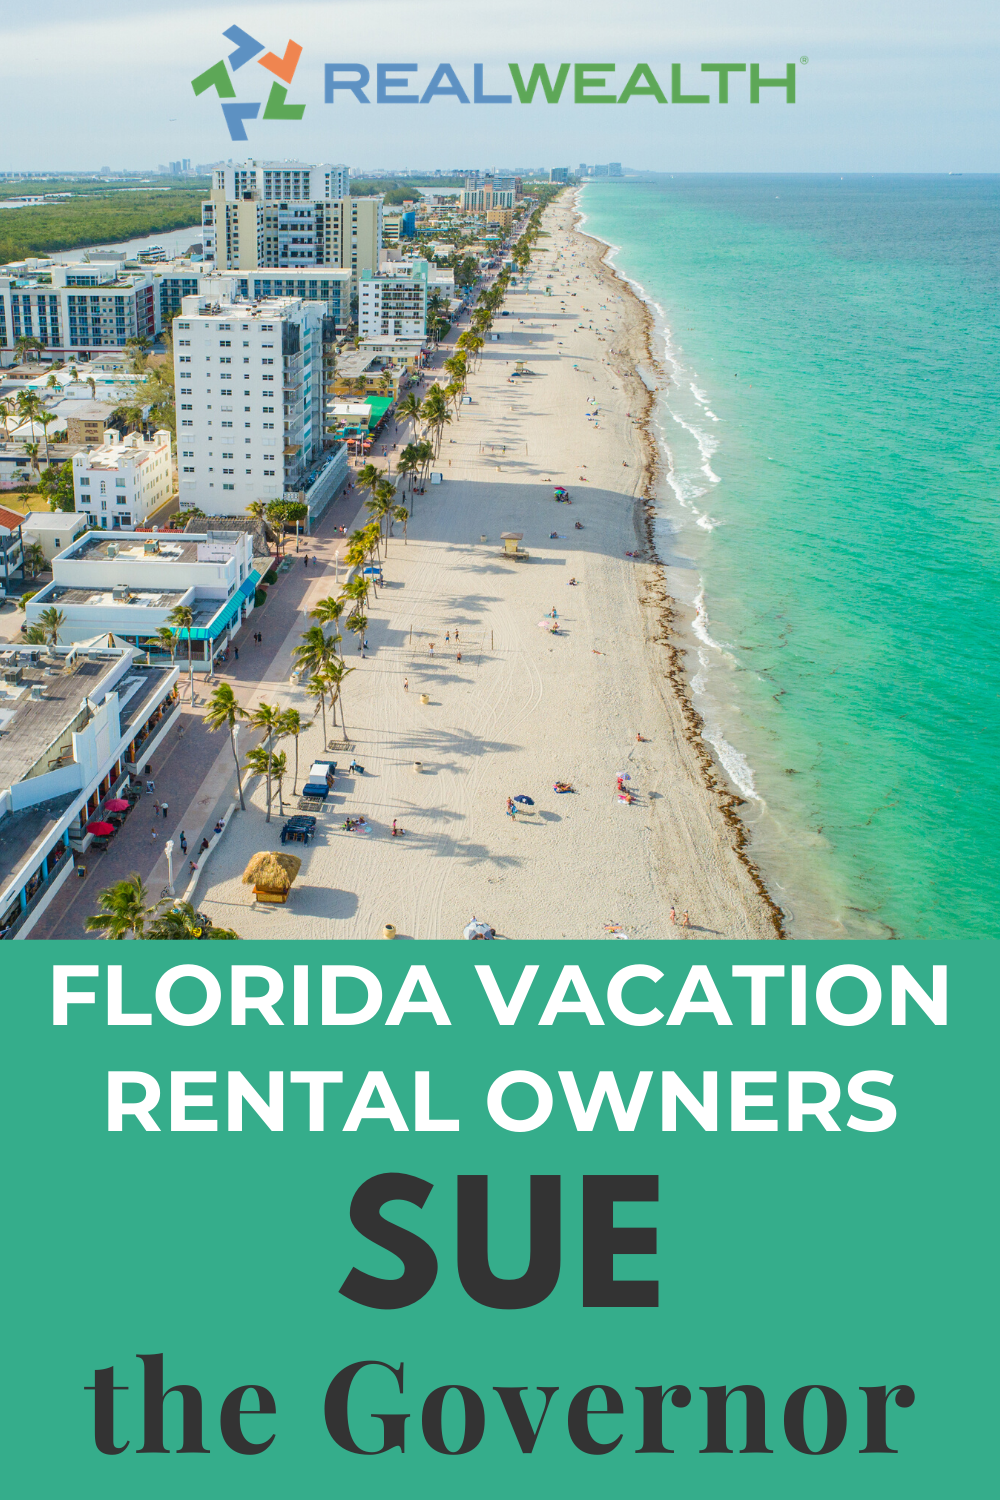 [Podcast & Article] Real Estate Florida Vacation Rental